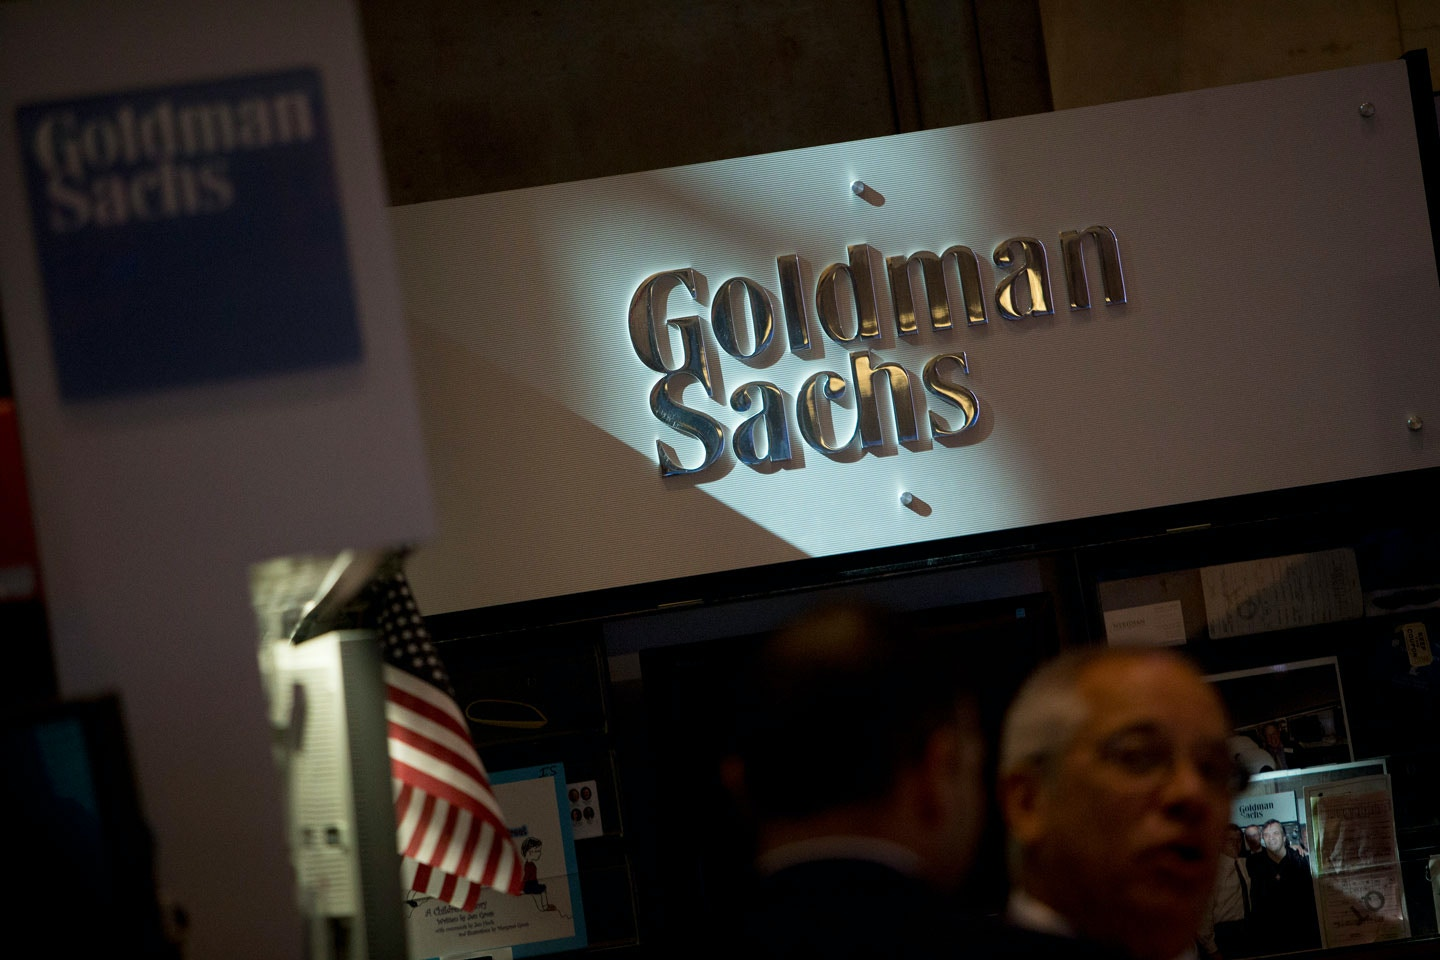 The Goldman Sachs & Co. logo is displayed at the company's booth on the floor of the New York Stock Exchange (NYSE) in New York, U.S., on Friday, July 19, 2013. U.S. stocks fell after benchmark equities gauges rose to records yesterday, after disappointing earnings from Google Inc. and Microsoft Corp. overshadowed better-than-forecast results from General Electric Co. Photographer: Scott Eells/Bloomberg via Getty Images